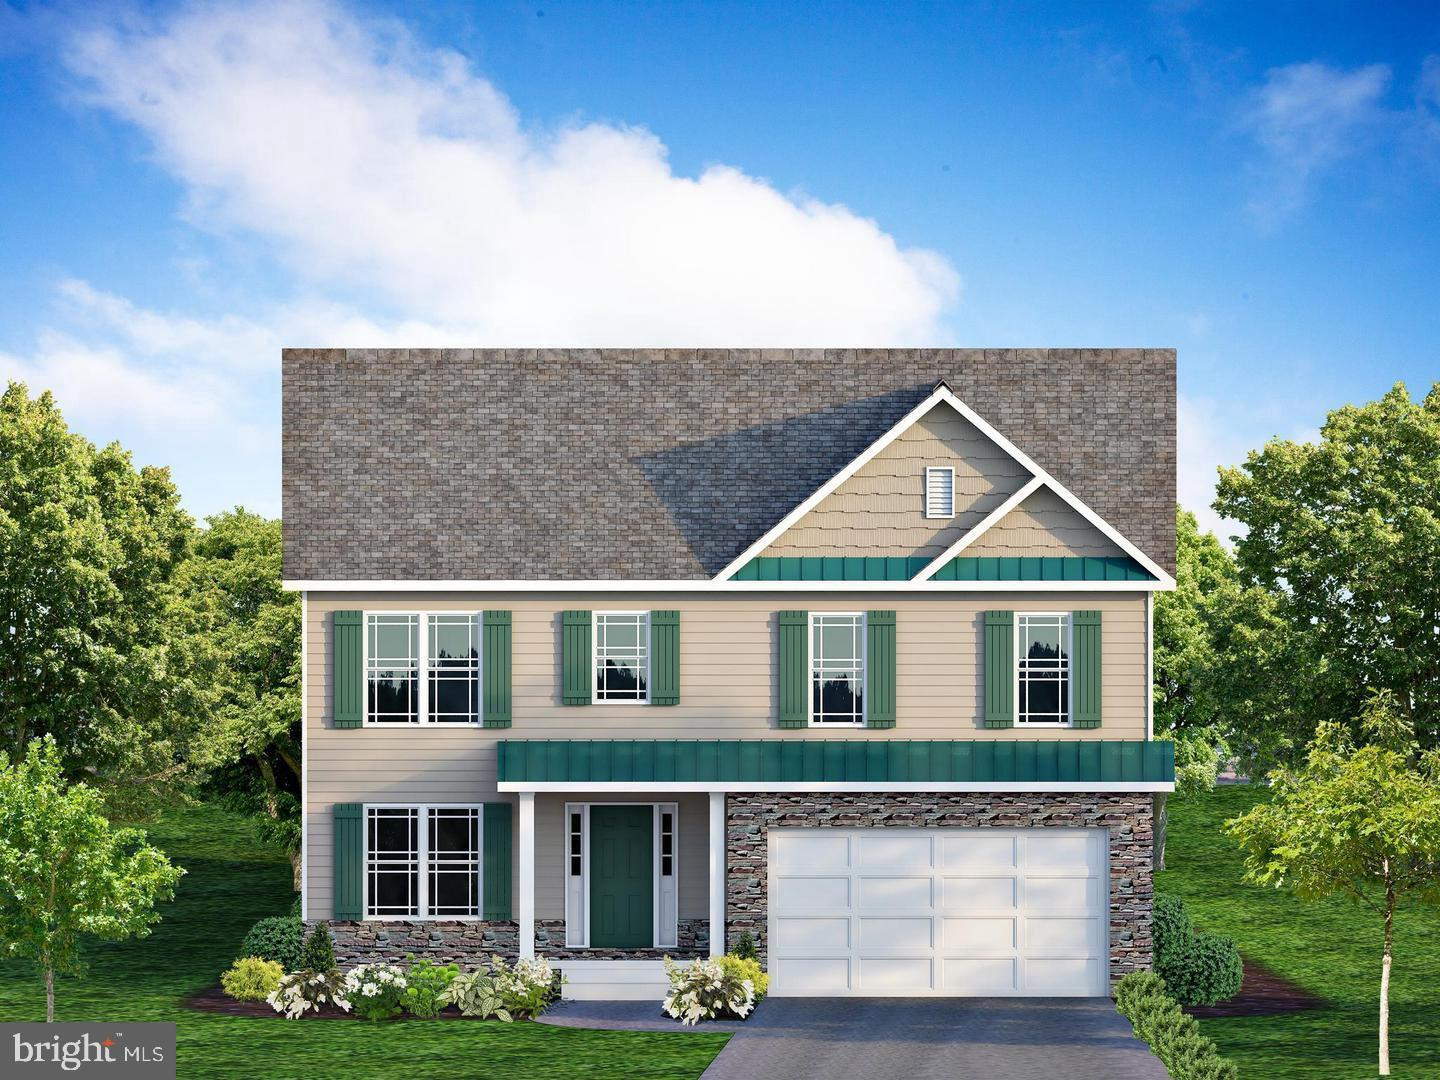 Lot 1B E MAPLE ROAD, LINTHICUM, MD 21090